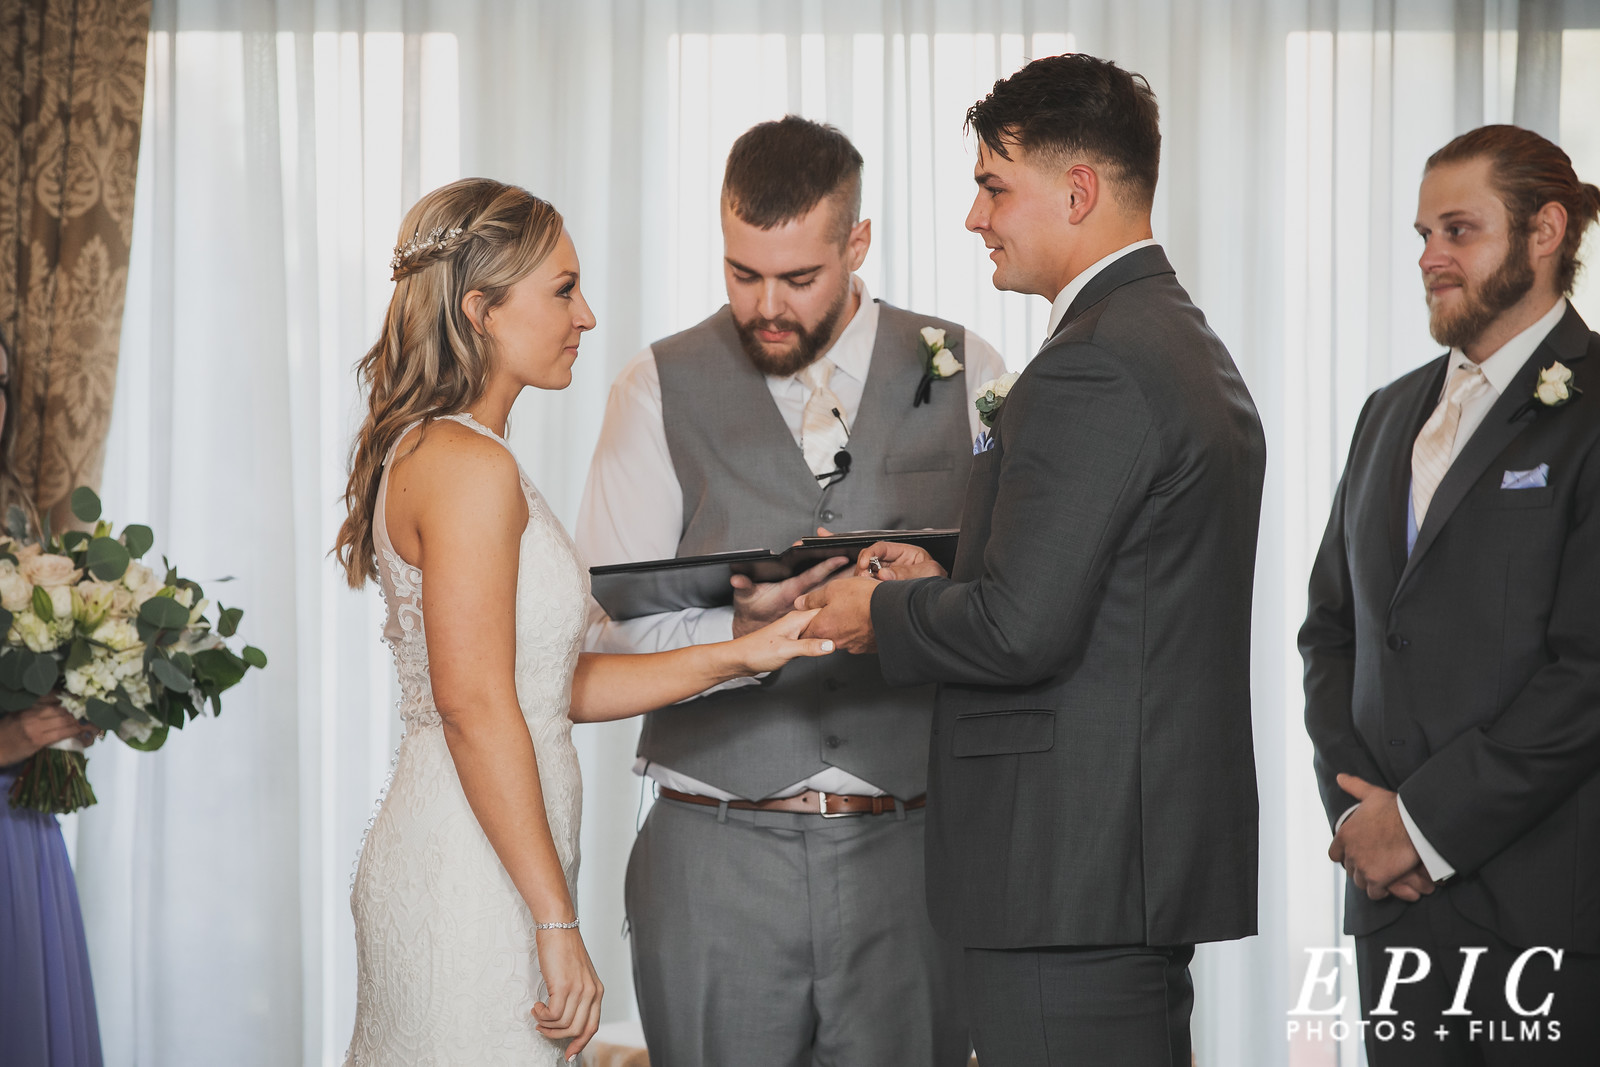 Groom putting ring on bride's finger during wedding ceremony at Loose Mansion